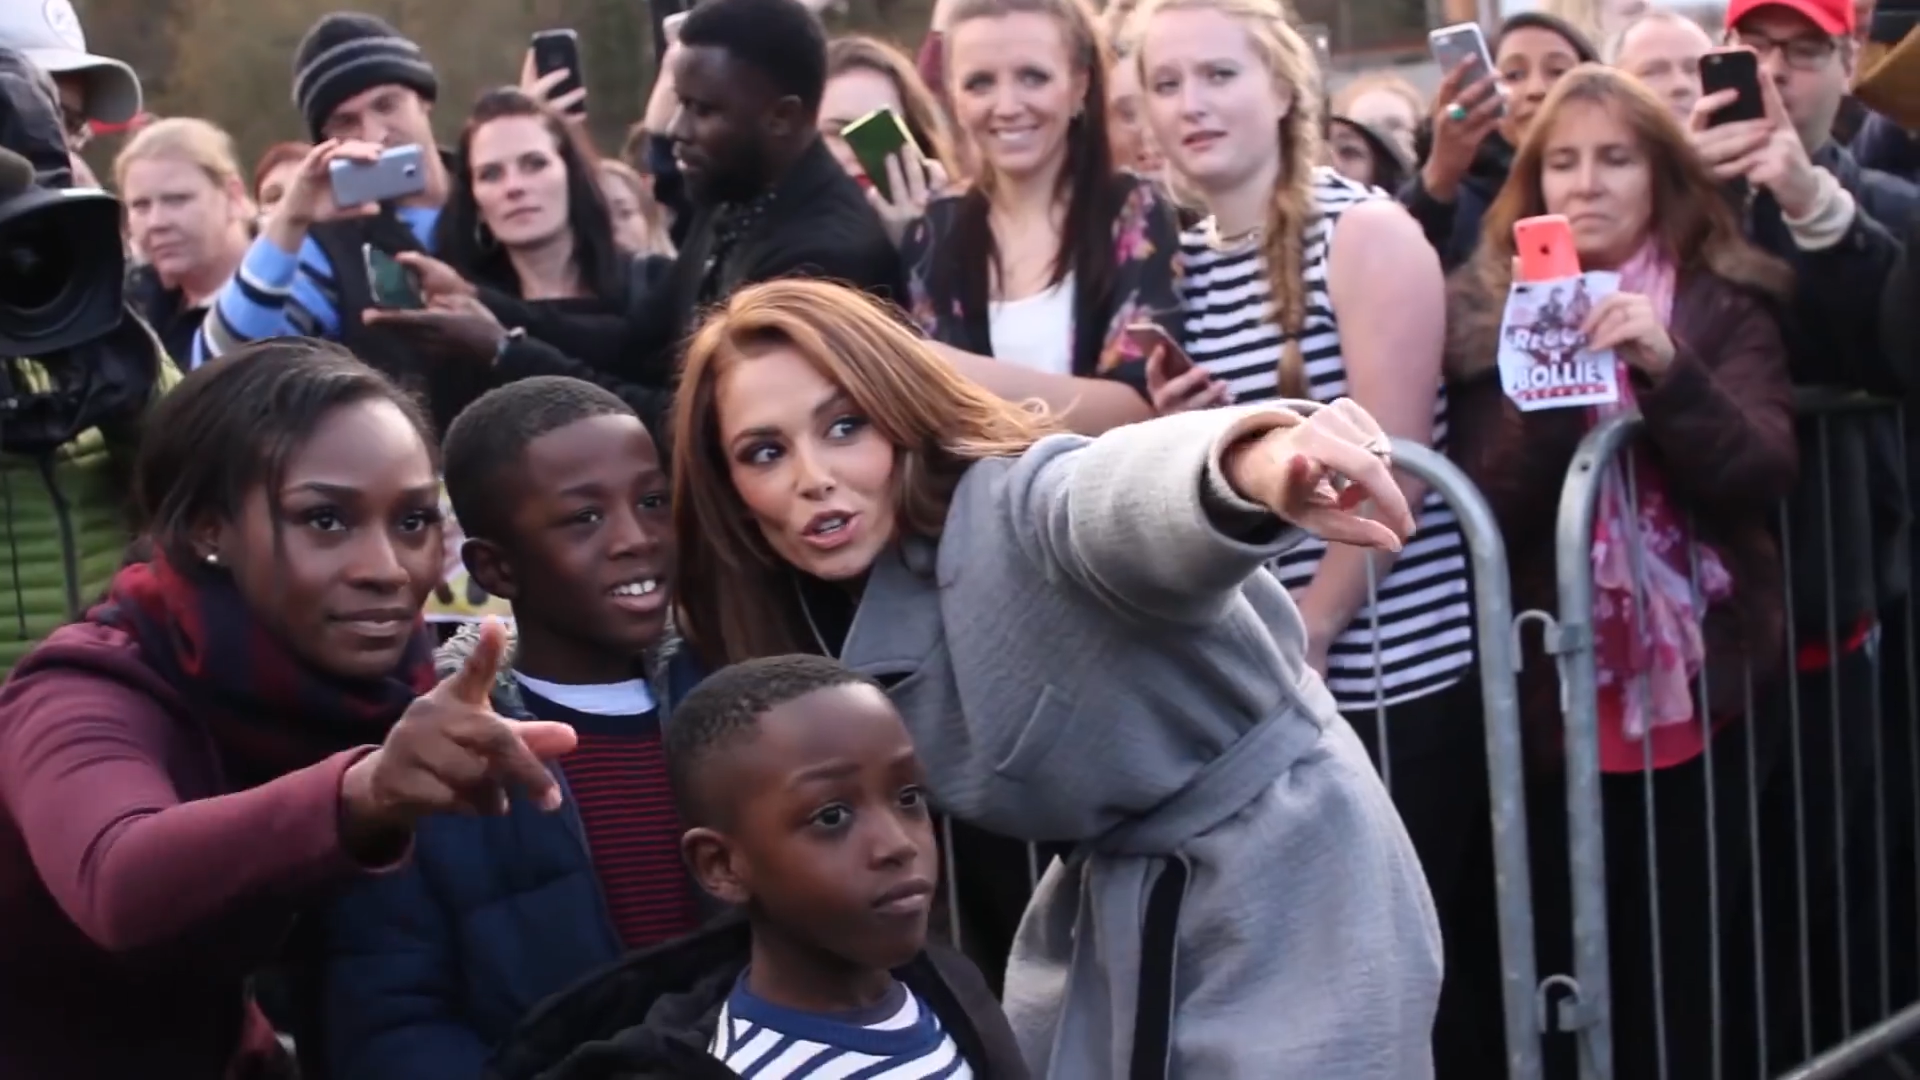 Reggie and Bollie's Family pose with XFactor's Cheryl Cole in Farnborough for their homecoming gig.